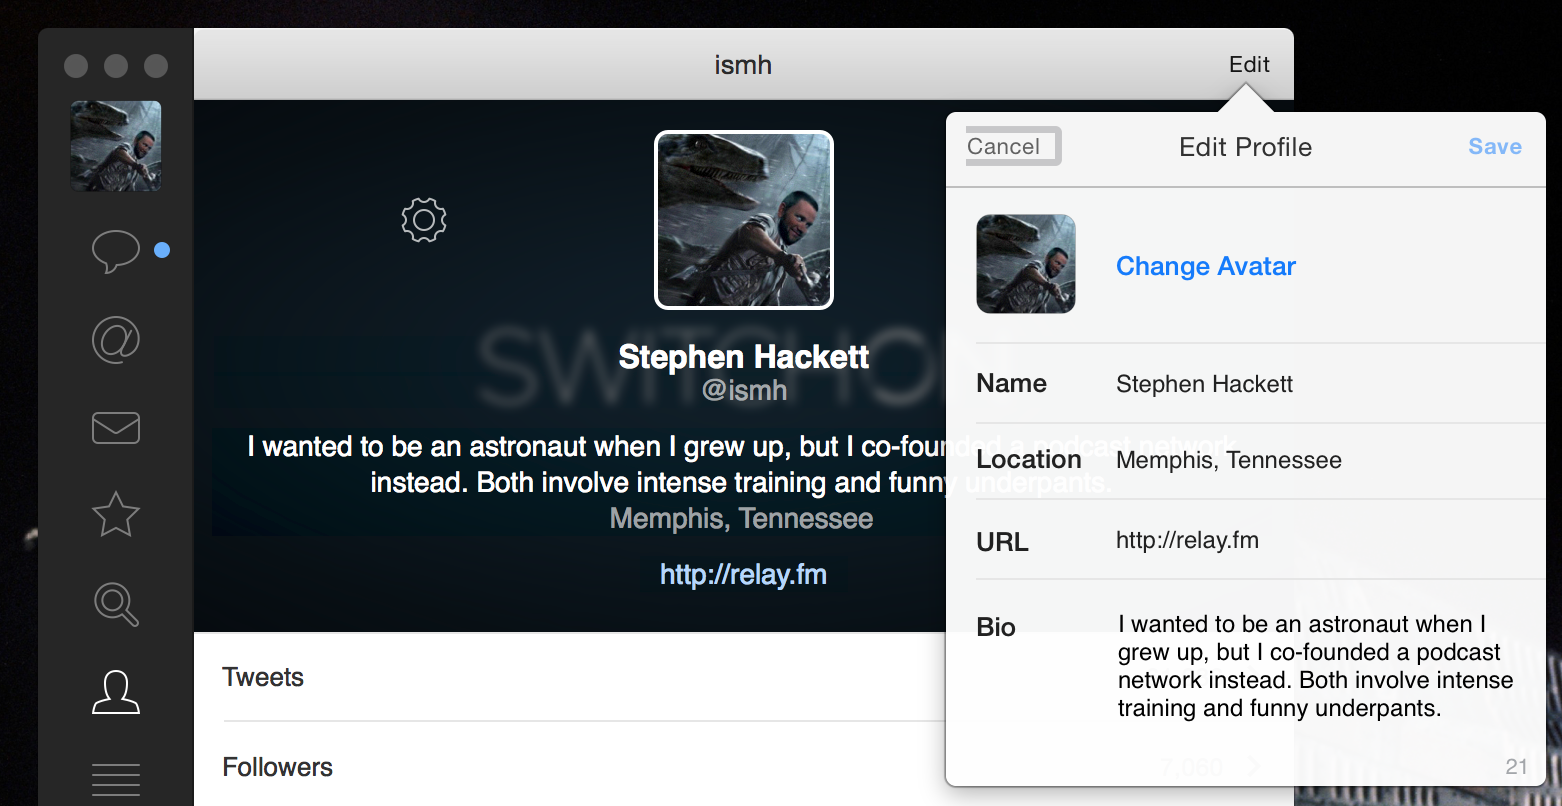 Editing your profile in Tweetbot